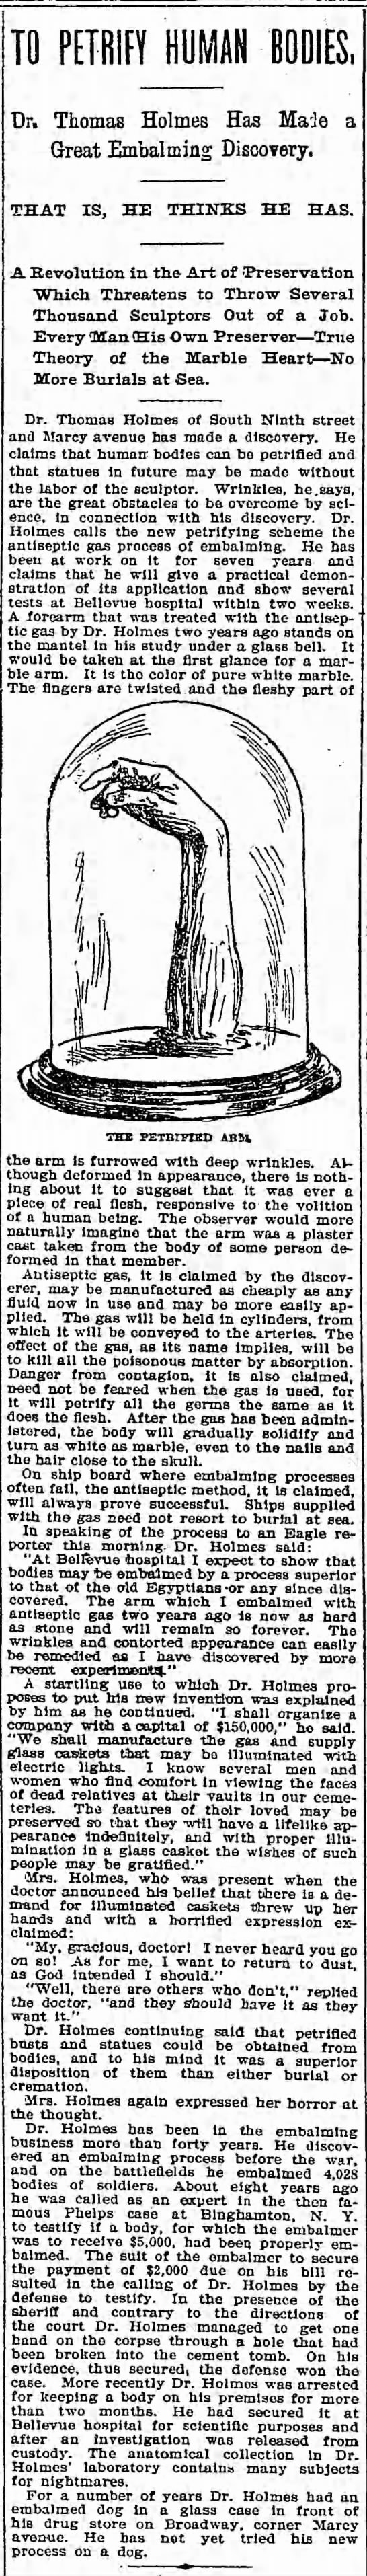 Dr. Thomas Holmes Has Made a Great Embalming Discovery 1895 -